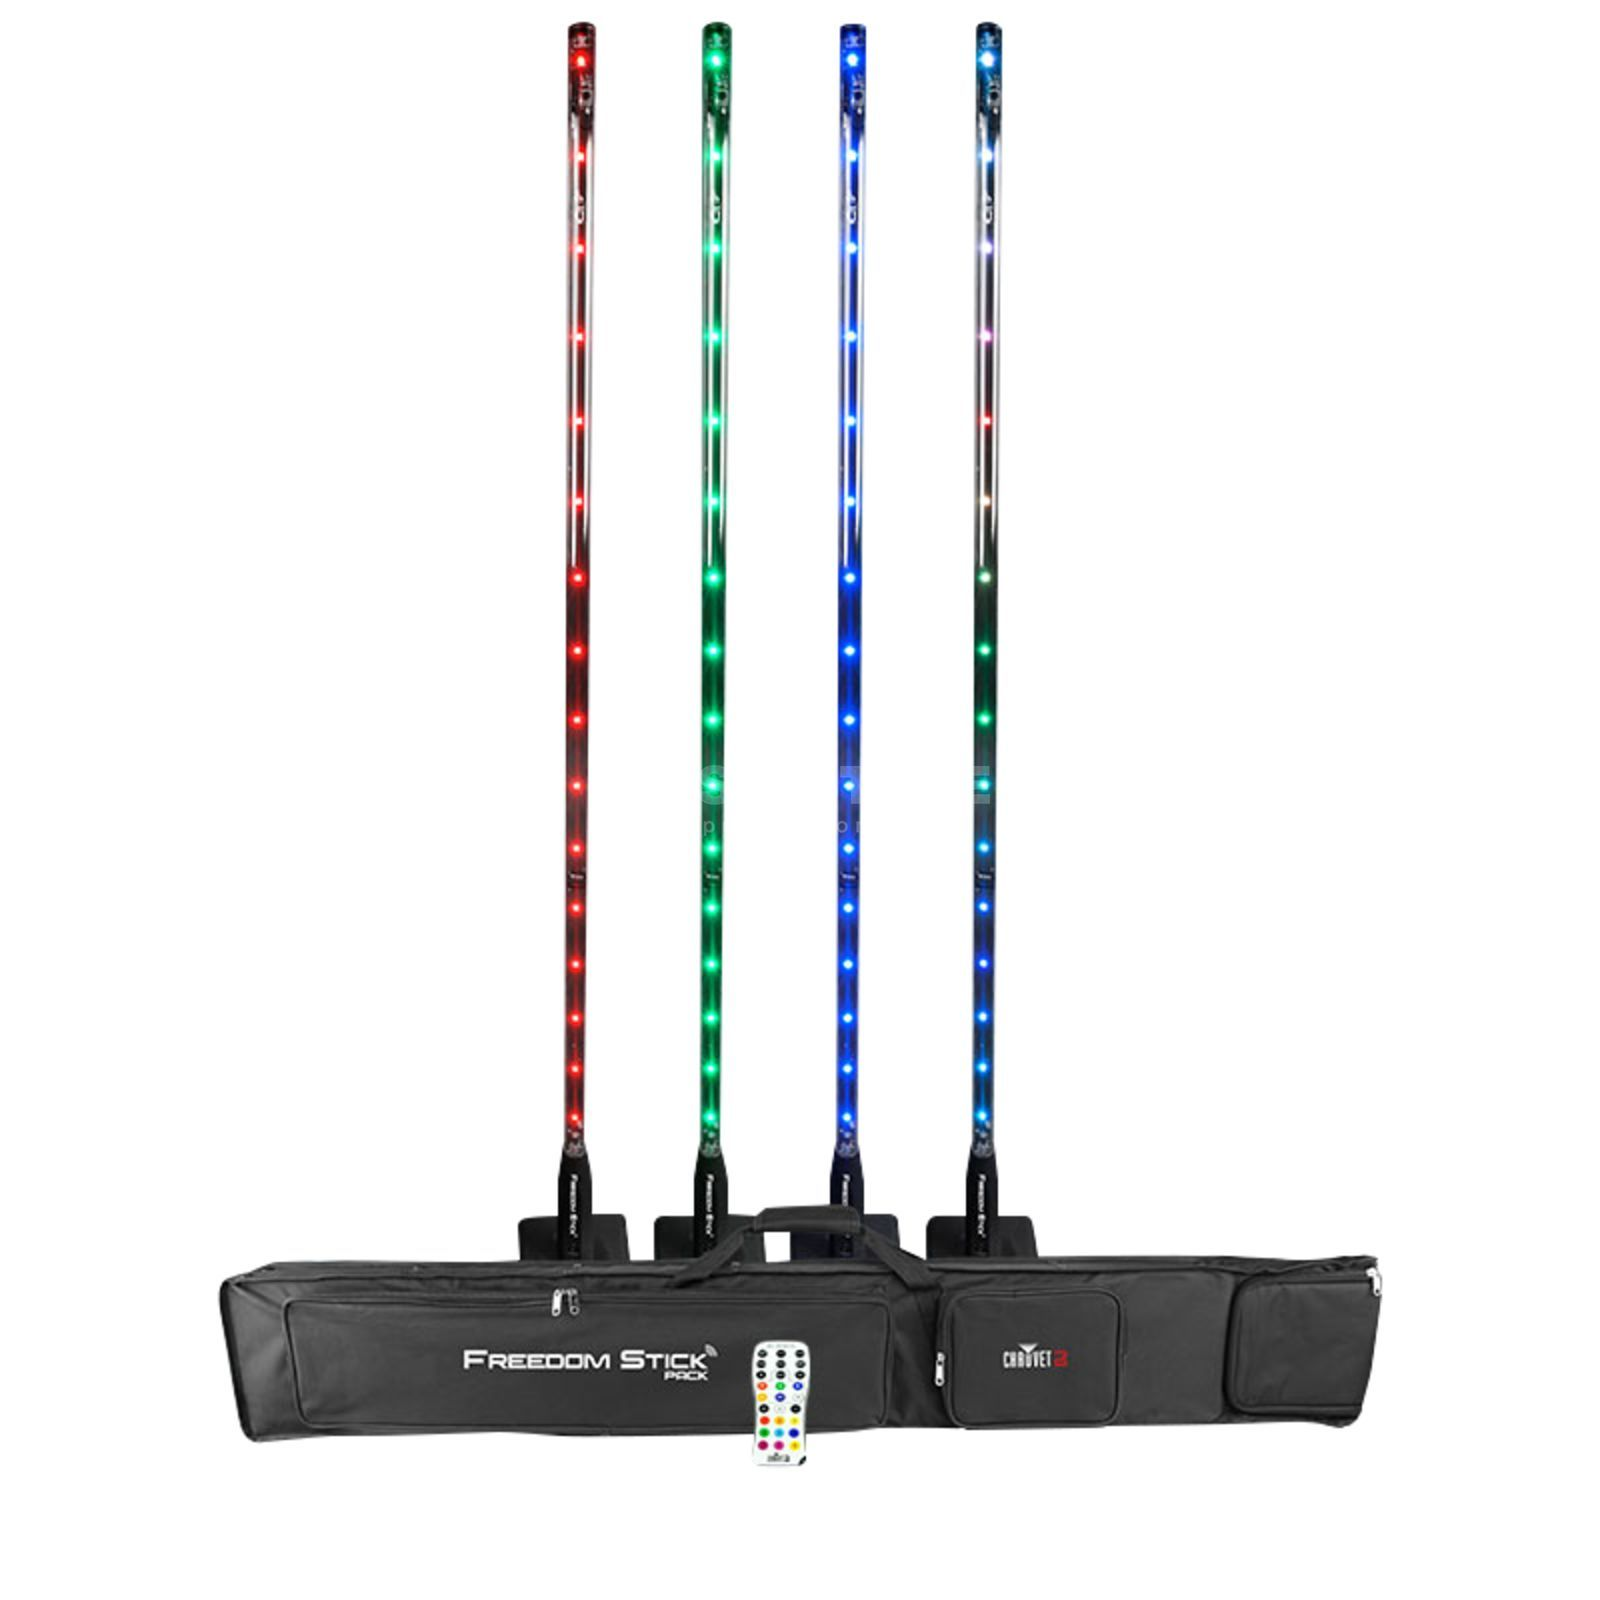 Chauvet DJ Freedom Stick Pack incl. Bag Charger, IRC-6 Image du produit